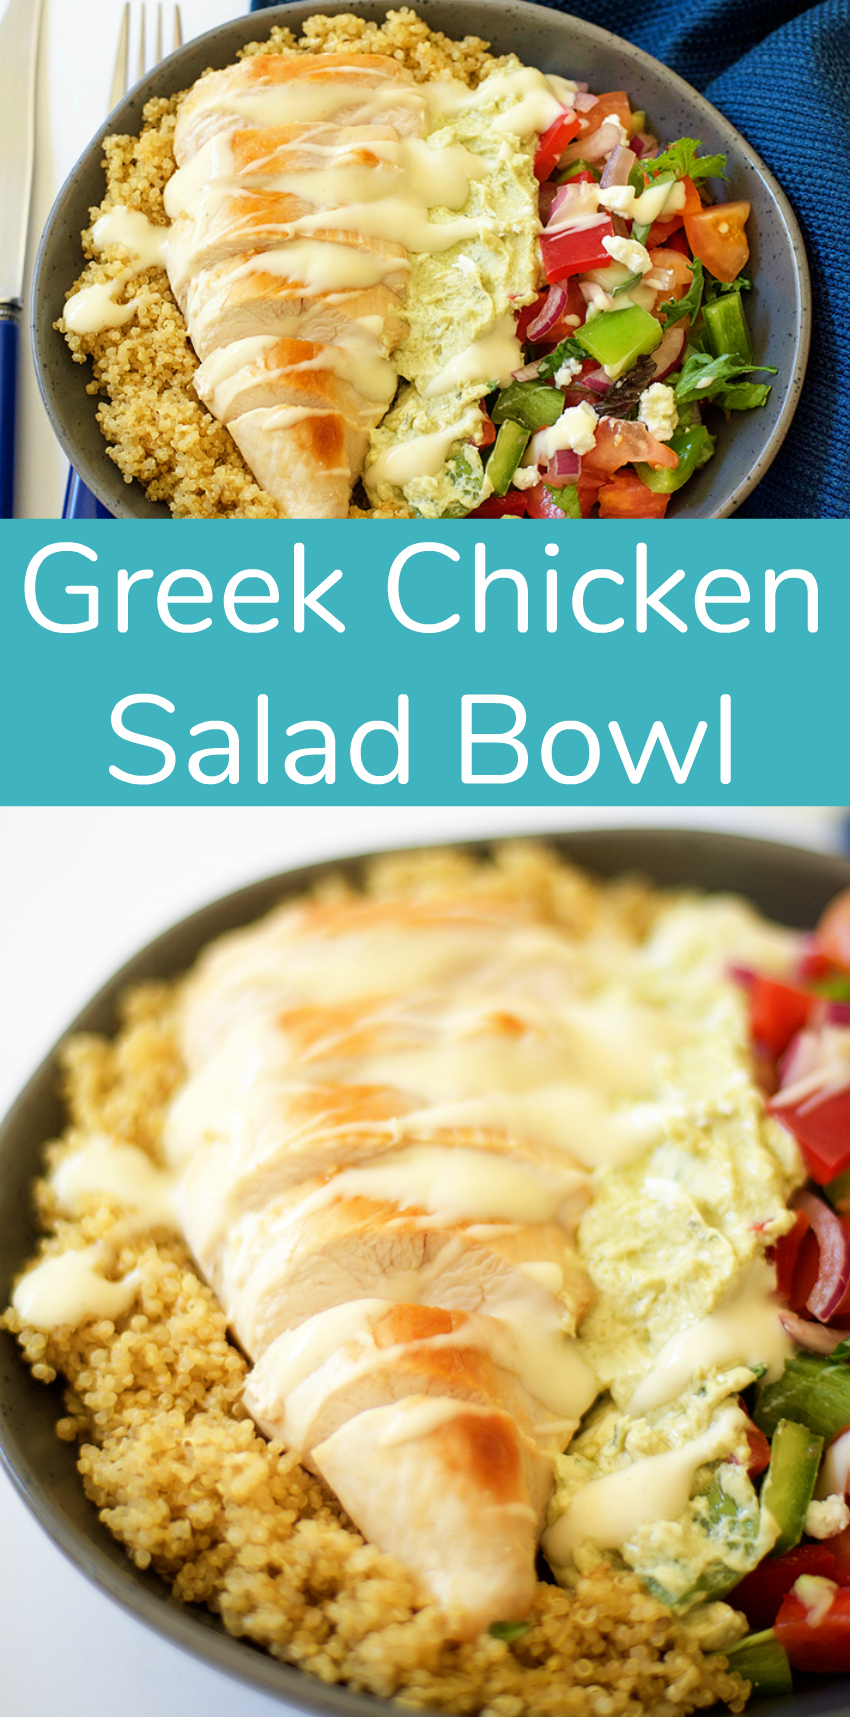 Greek Chicken Salad Bowl for a Simple Dinner